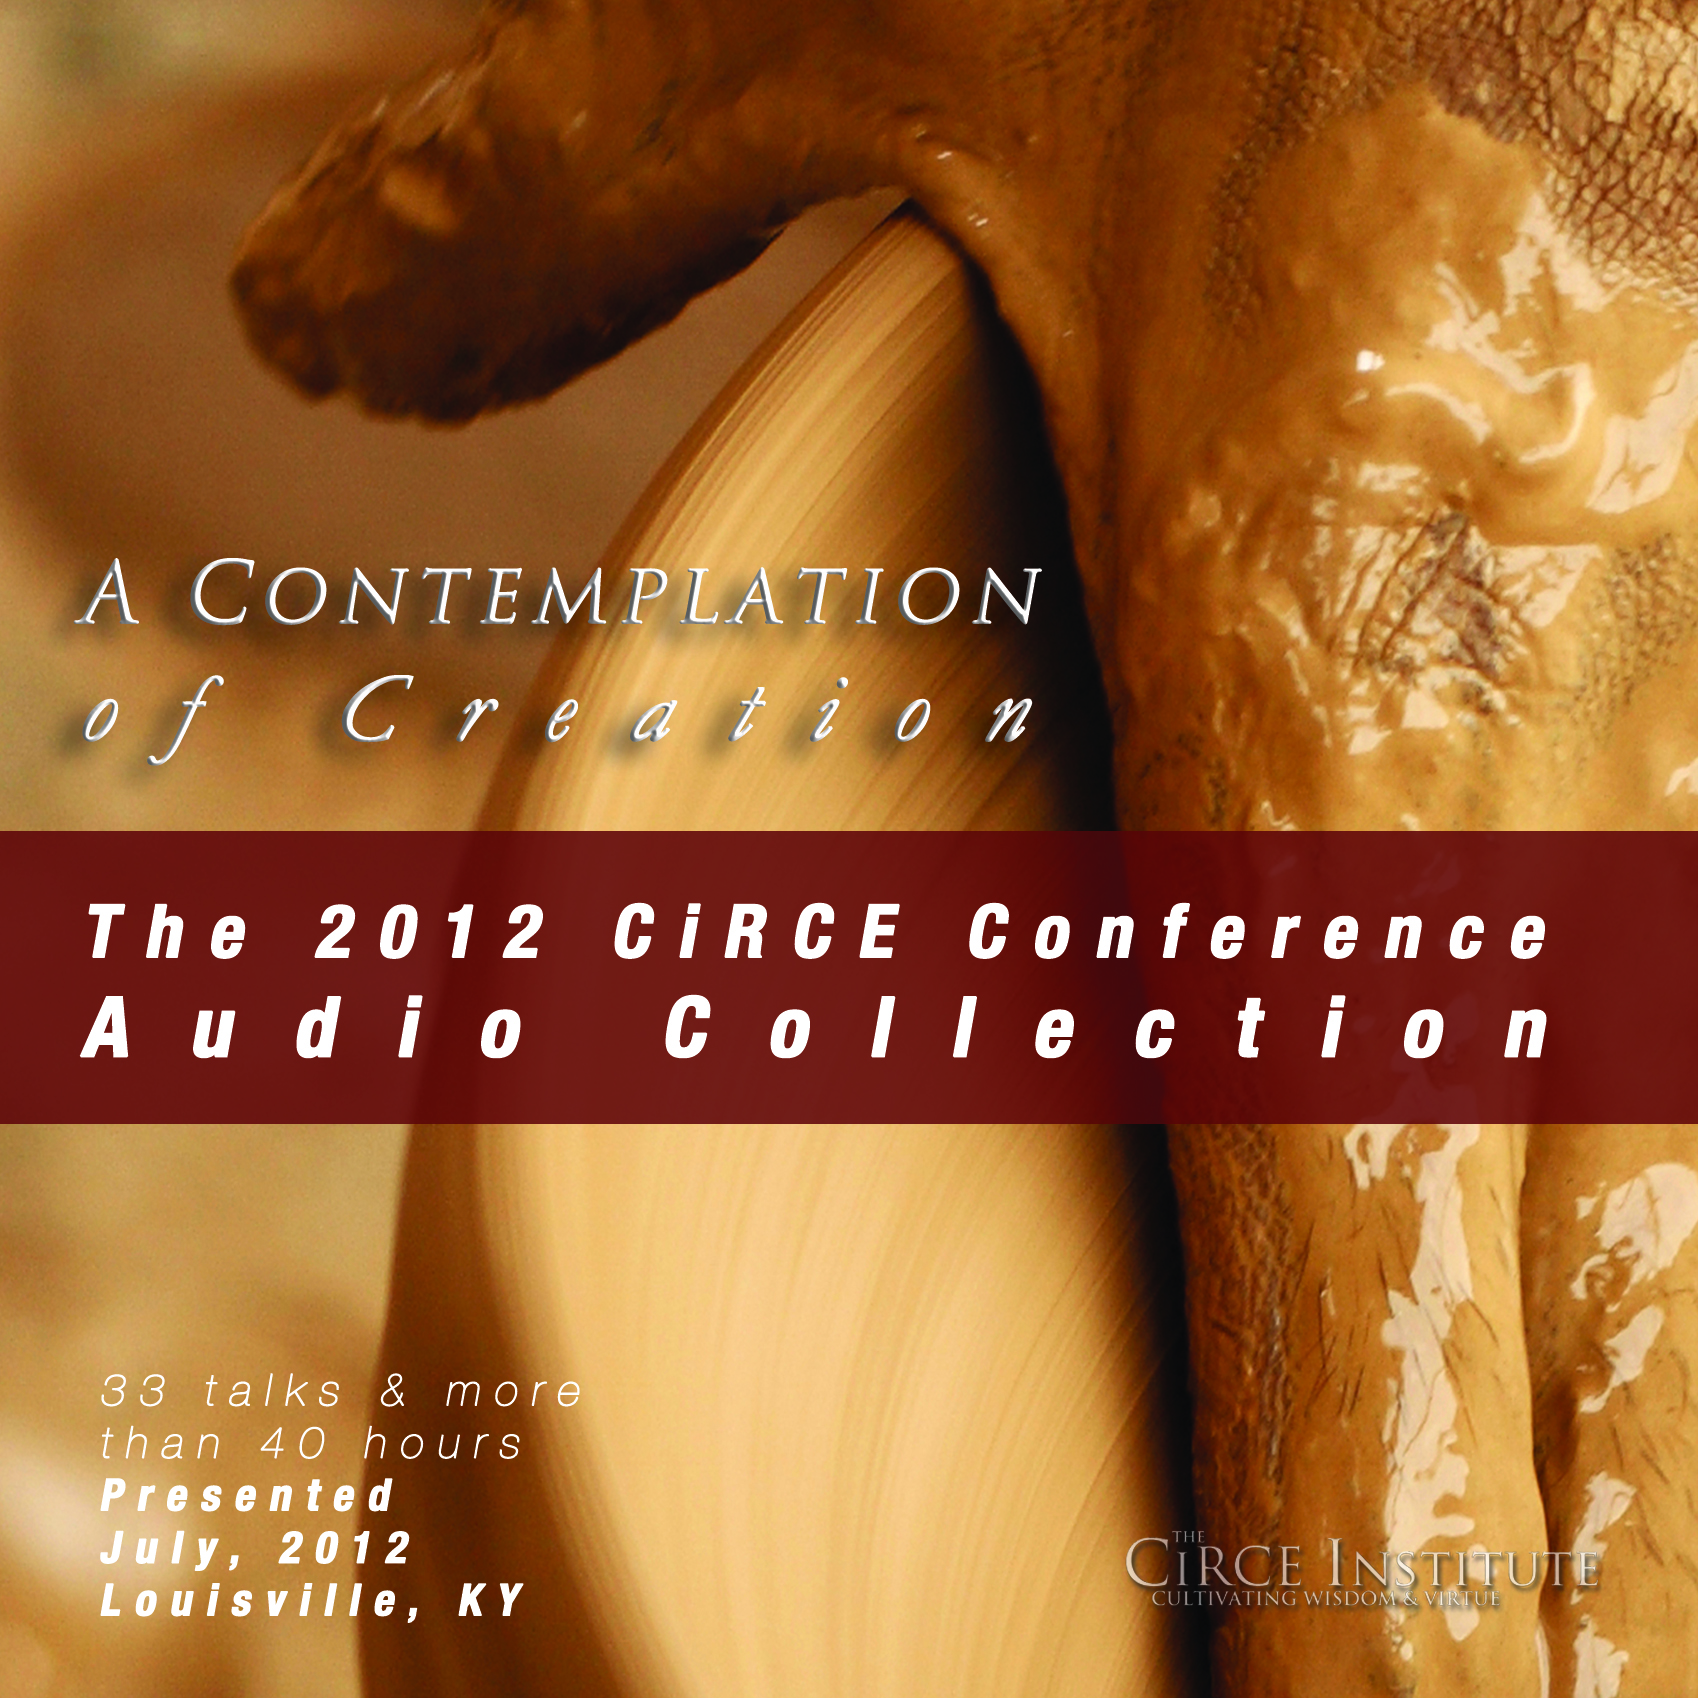 A Contemplation of Creation: The 2012 Conference Audio Collection